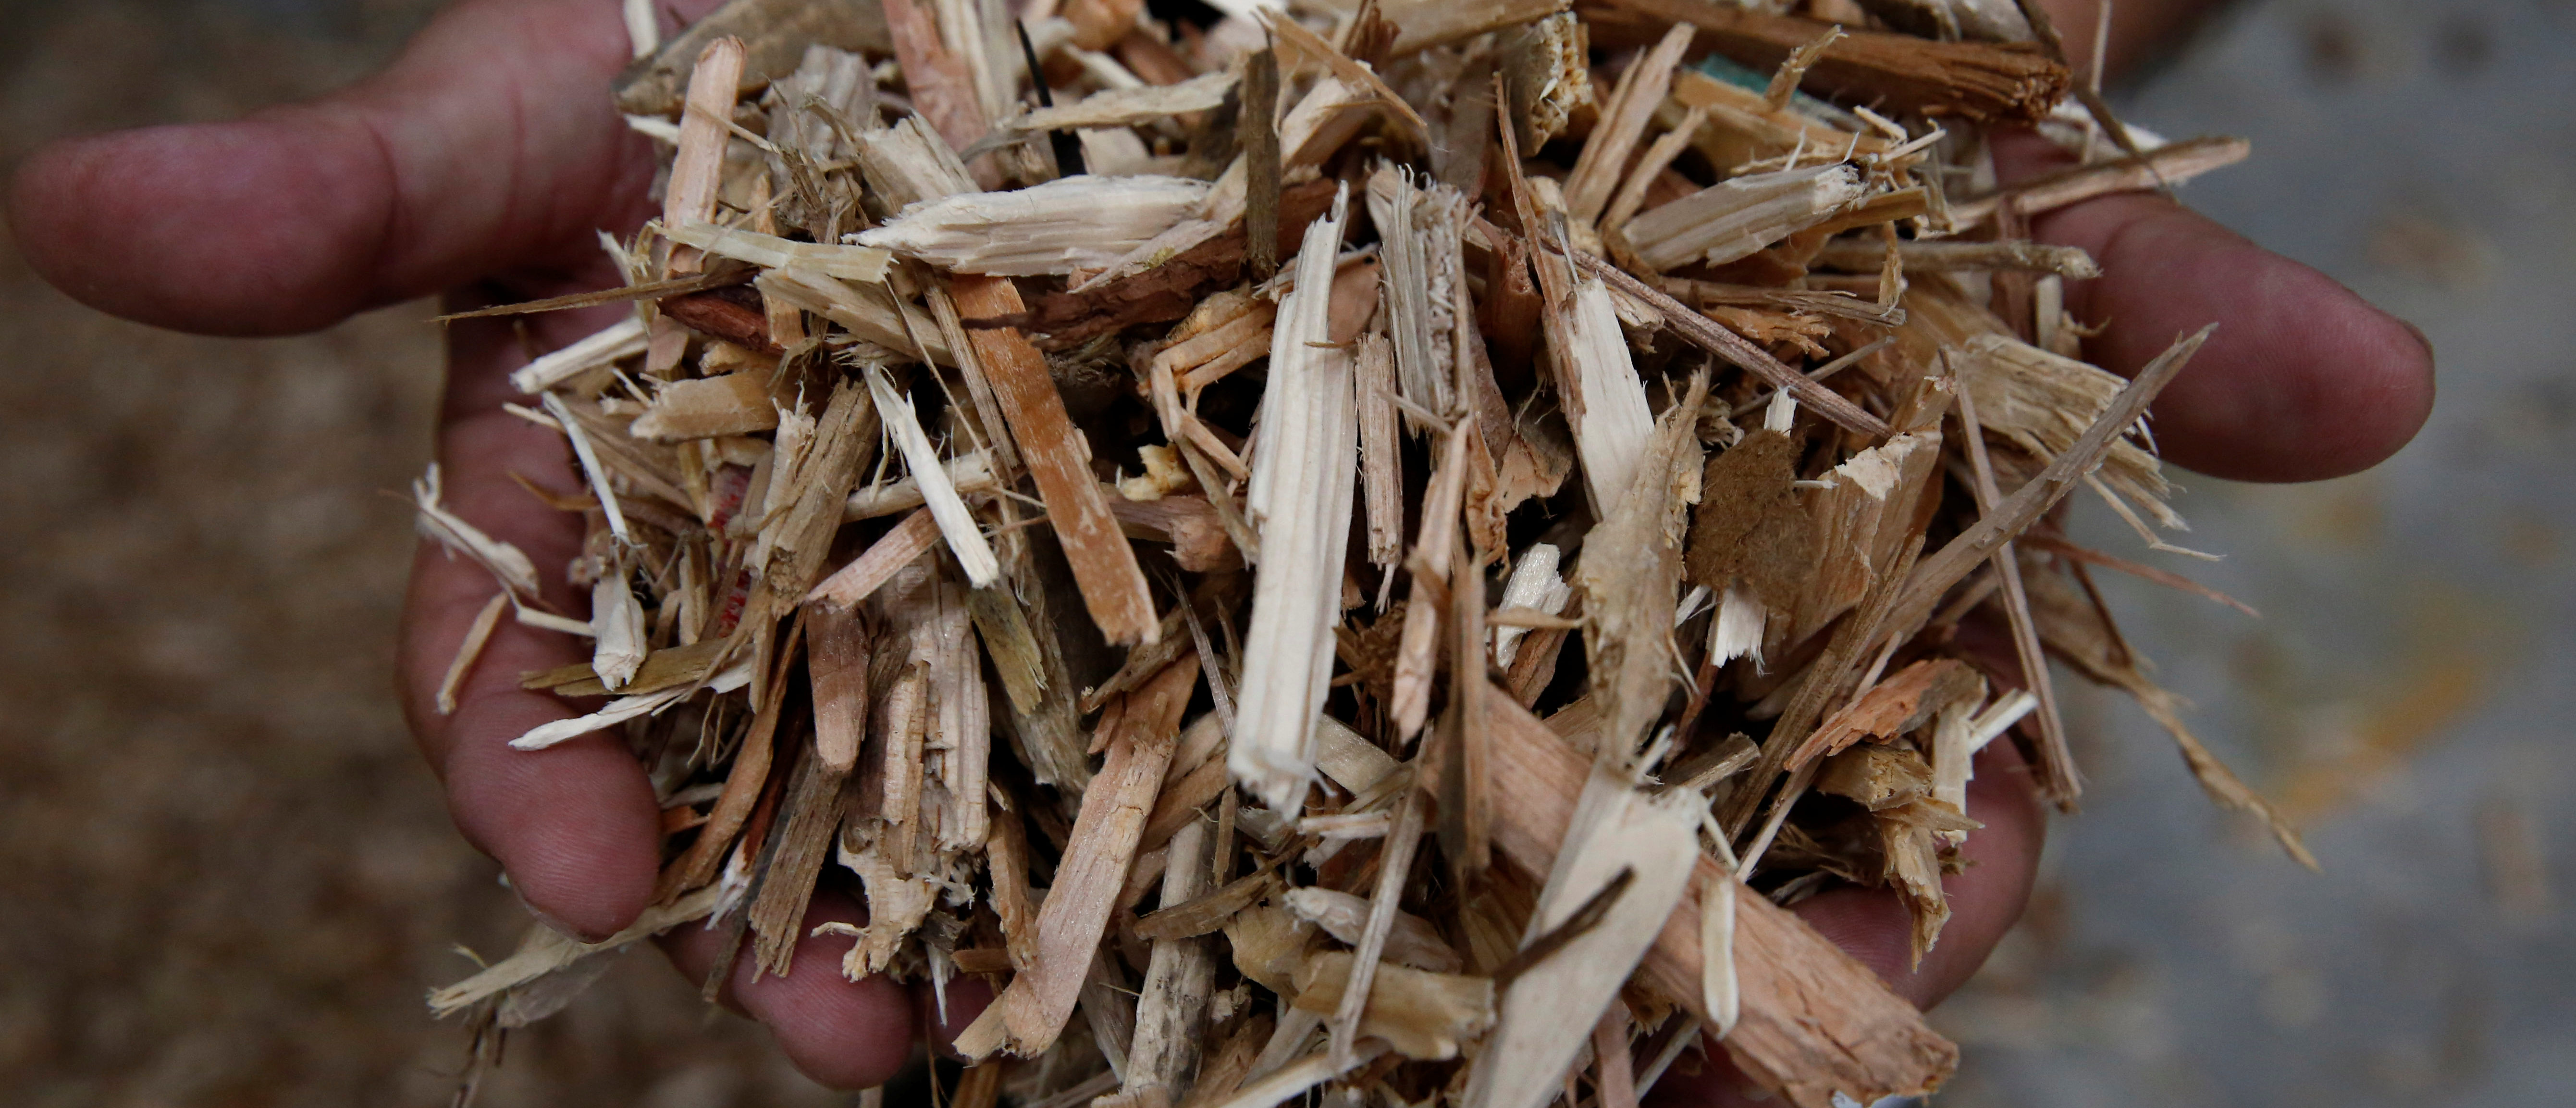 Collected wooden construction wastes are filed up at Eco Green Holdings's factory which makes wood chips from construction waste in Tokyo